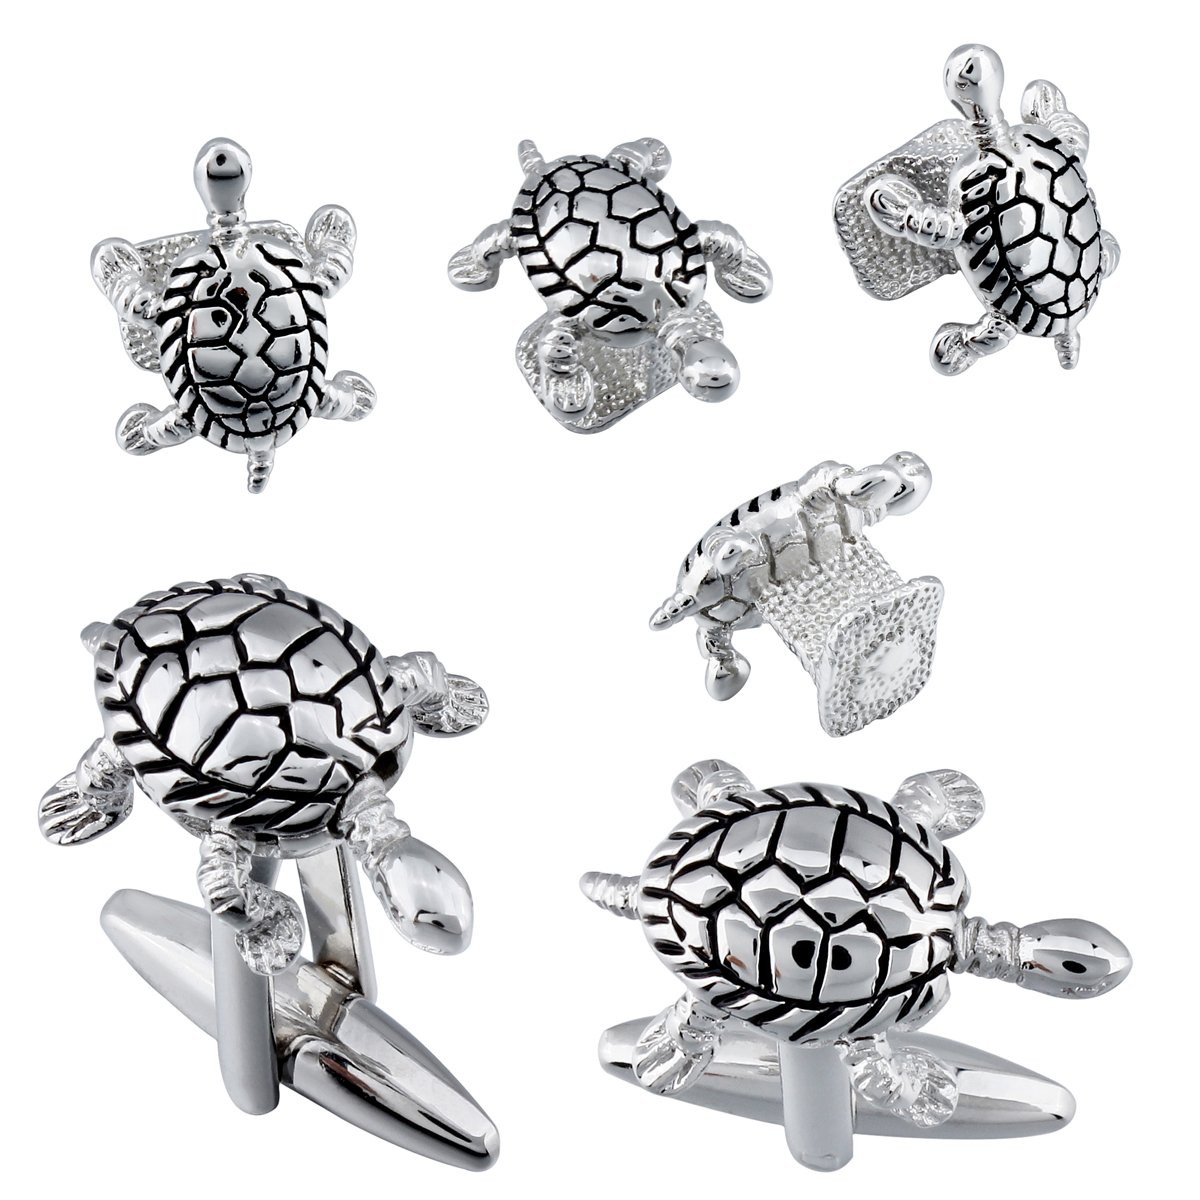 Mens Novelty Cufflinks and Studs Set for Tuxedo Siver Turtle Shape - Best Gift for Boys